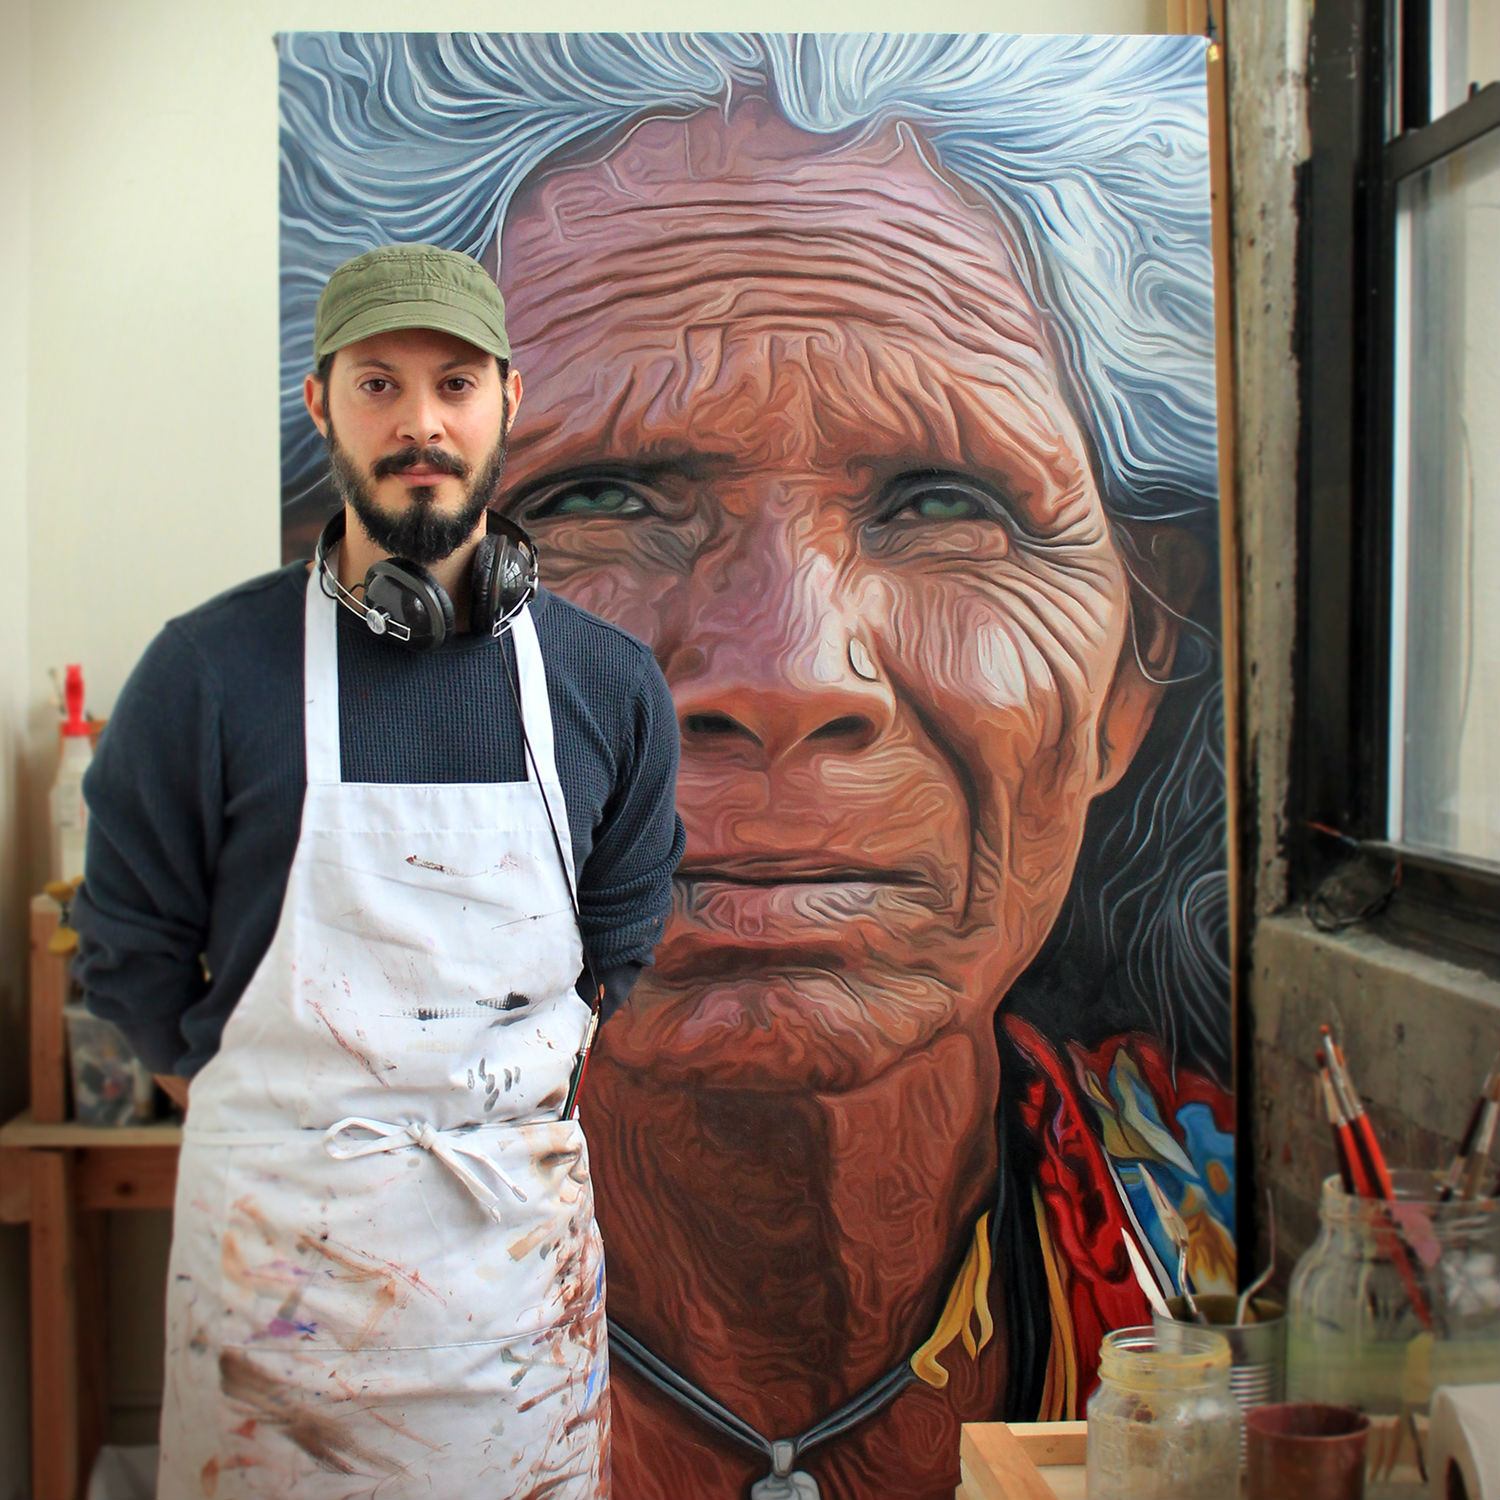 erik maniscalco painting hyperrealism portrait large canvas detail